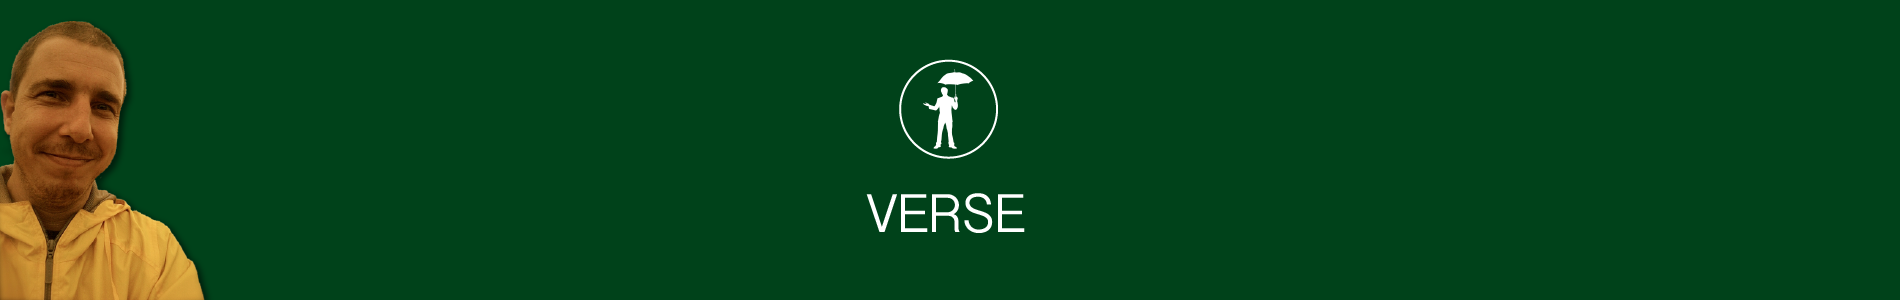 Header image for Verse page